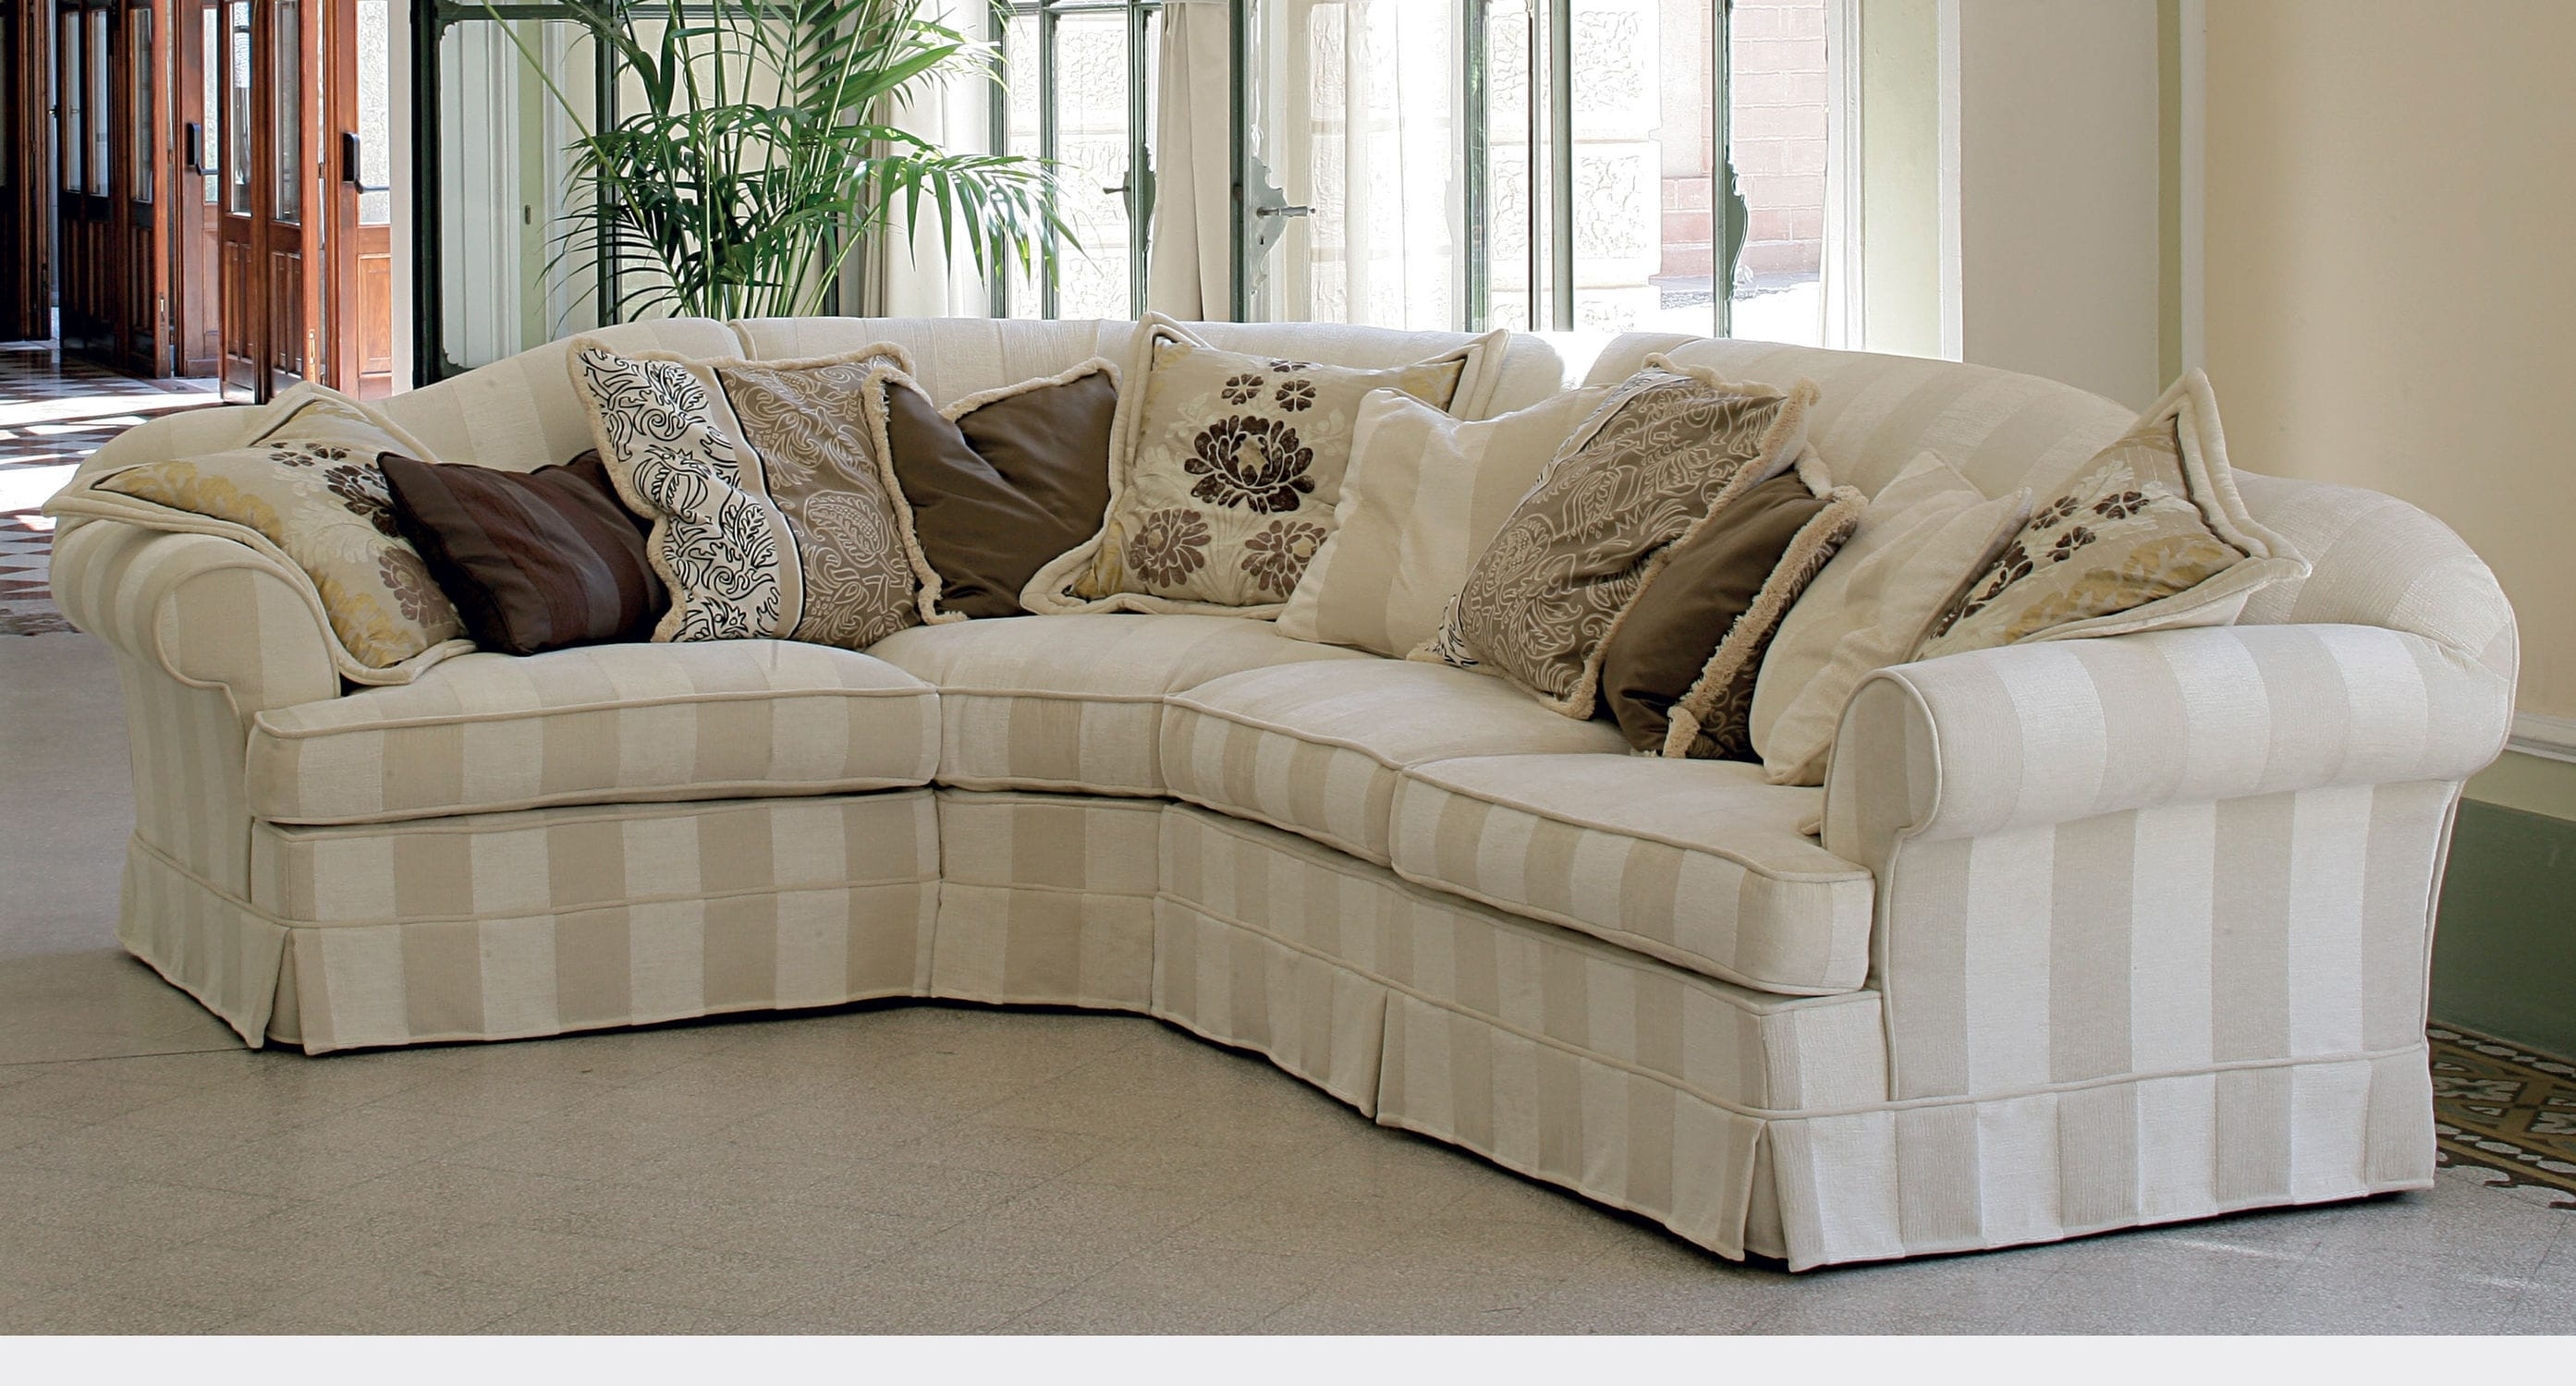 Corner Sofa Contemporary Fabric With Removable Cover Intended For Sofa With Removable Cover (Image 4 of 15)